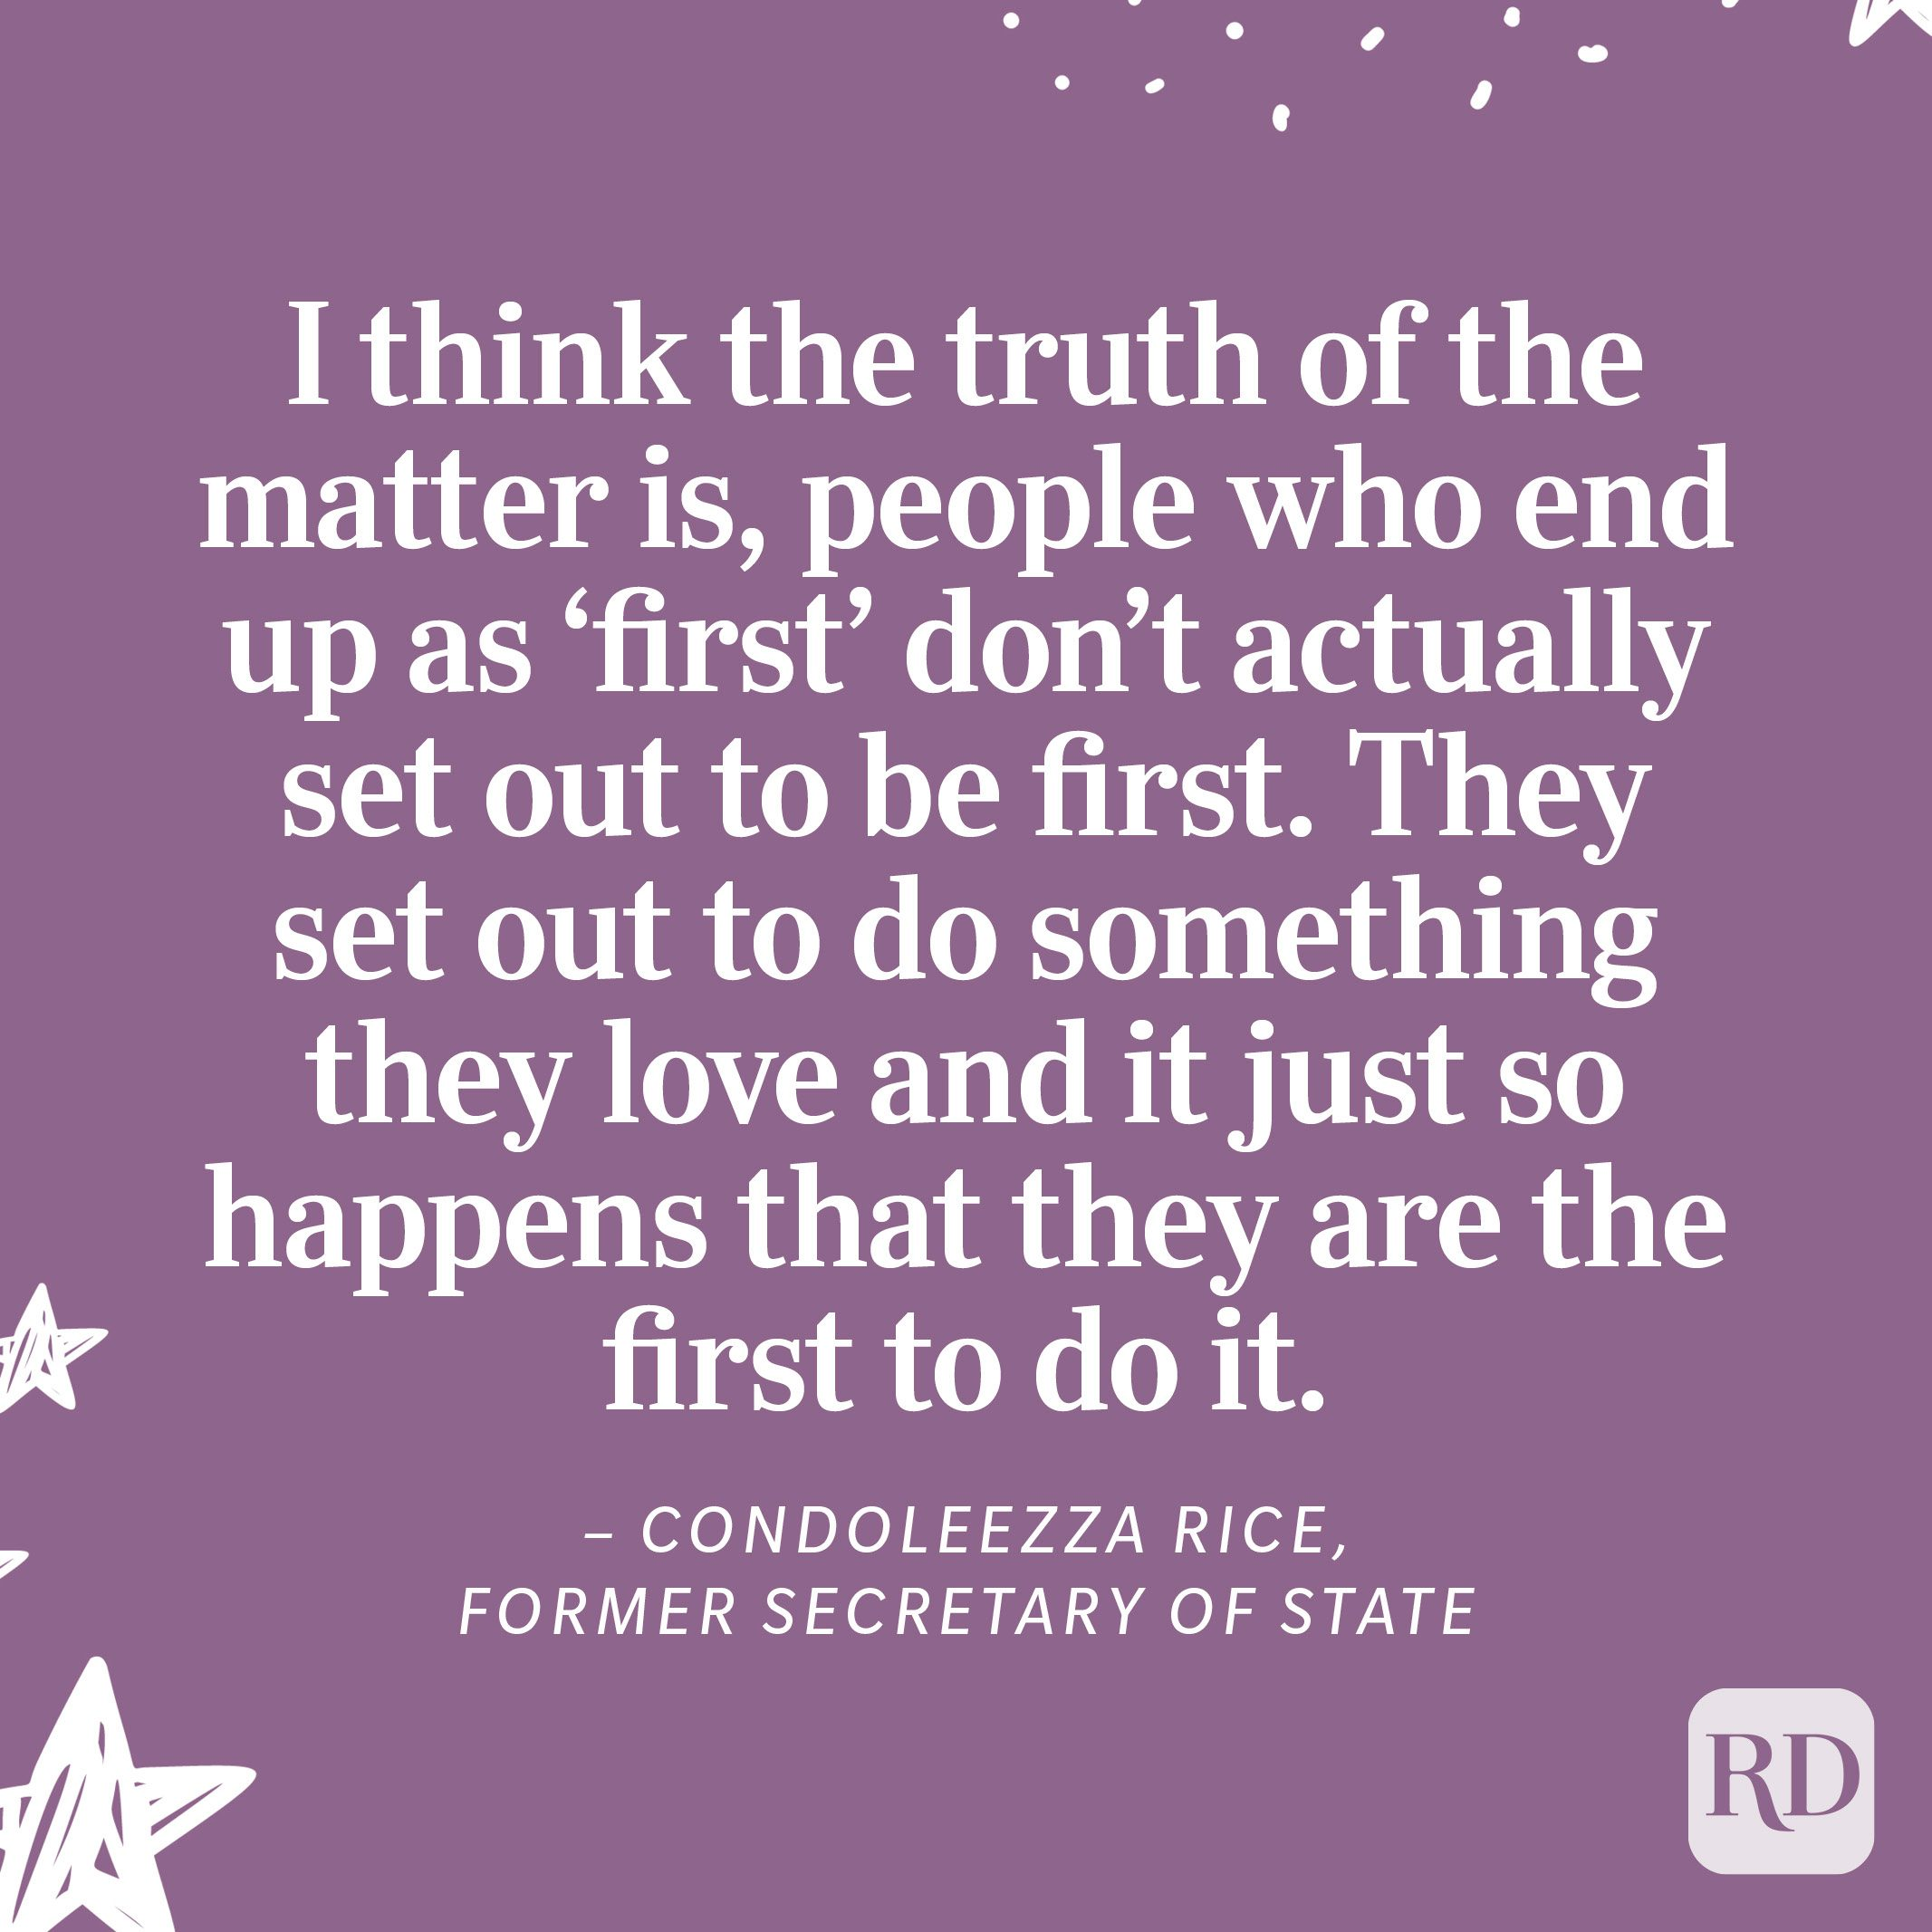 """""""I think the truth of the matter is, people who end up as 'first' don't actually set out to be first.They set out to do something they love and it just so happens that they are the first to do it.""""– Condoleezza Rice, Former Secretary of State"""